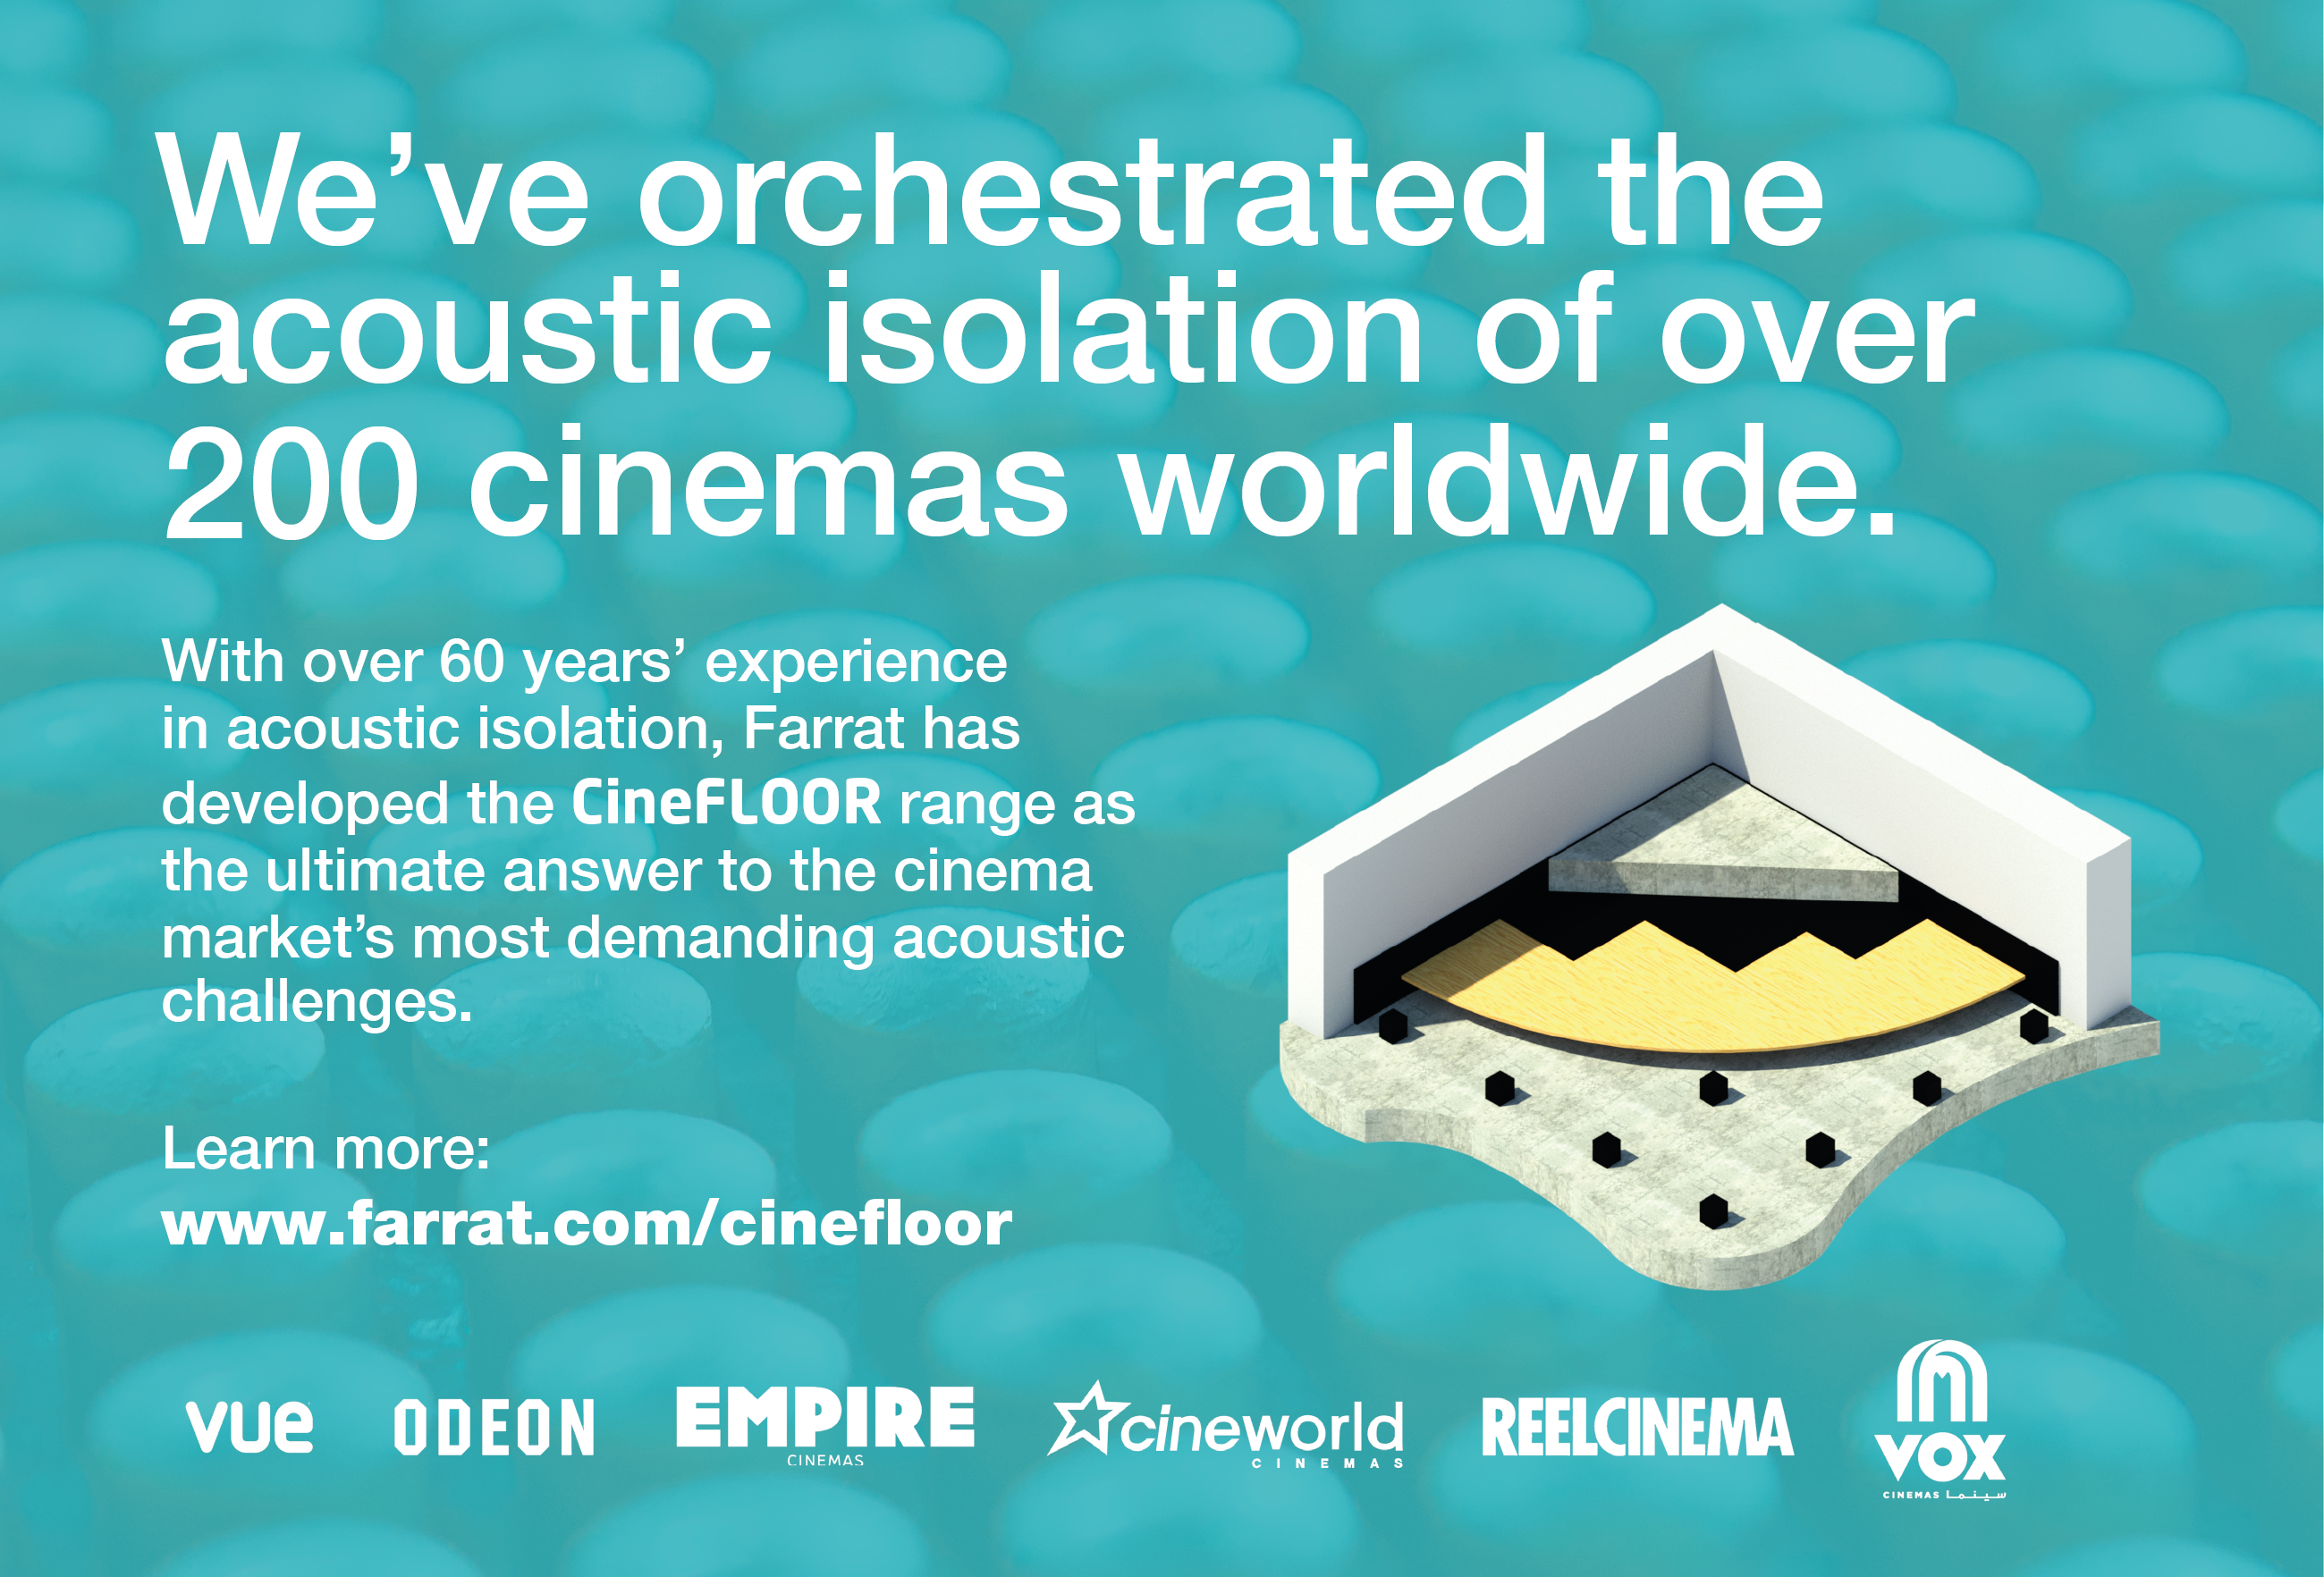 CineFLOOR is the new range of acoustic floating floors designed for Cinemas, from Farrat